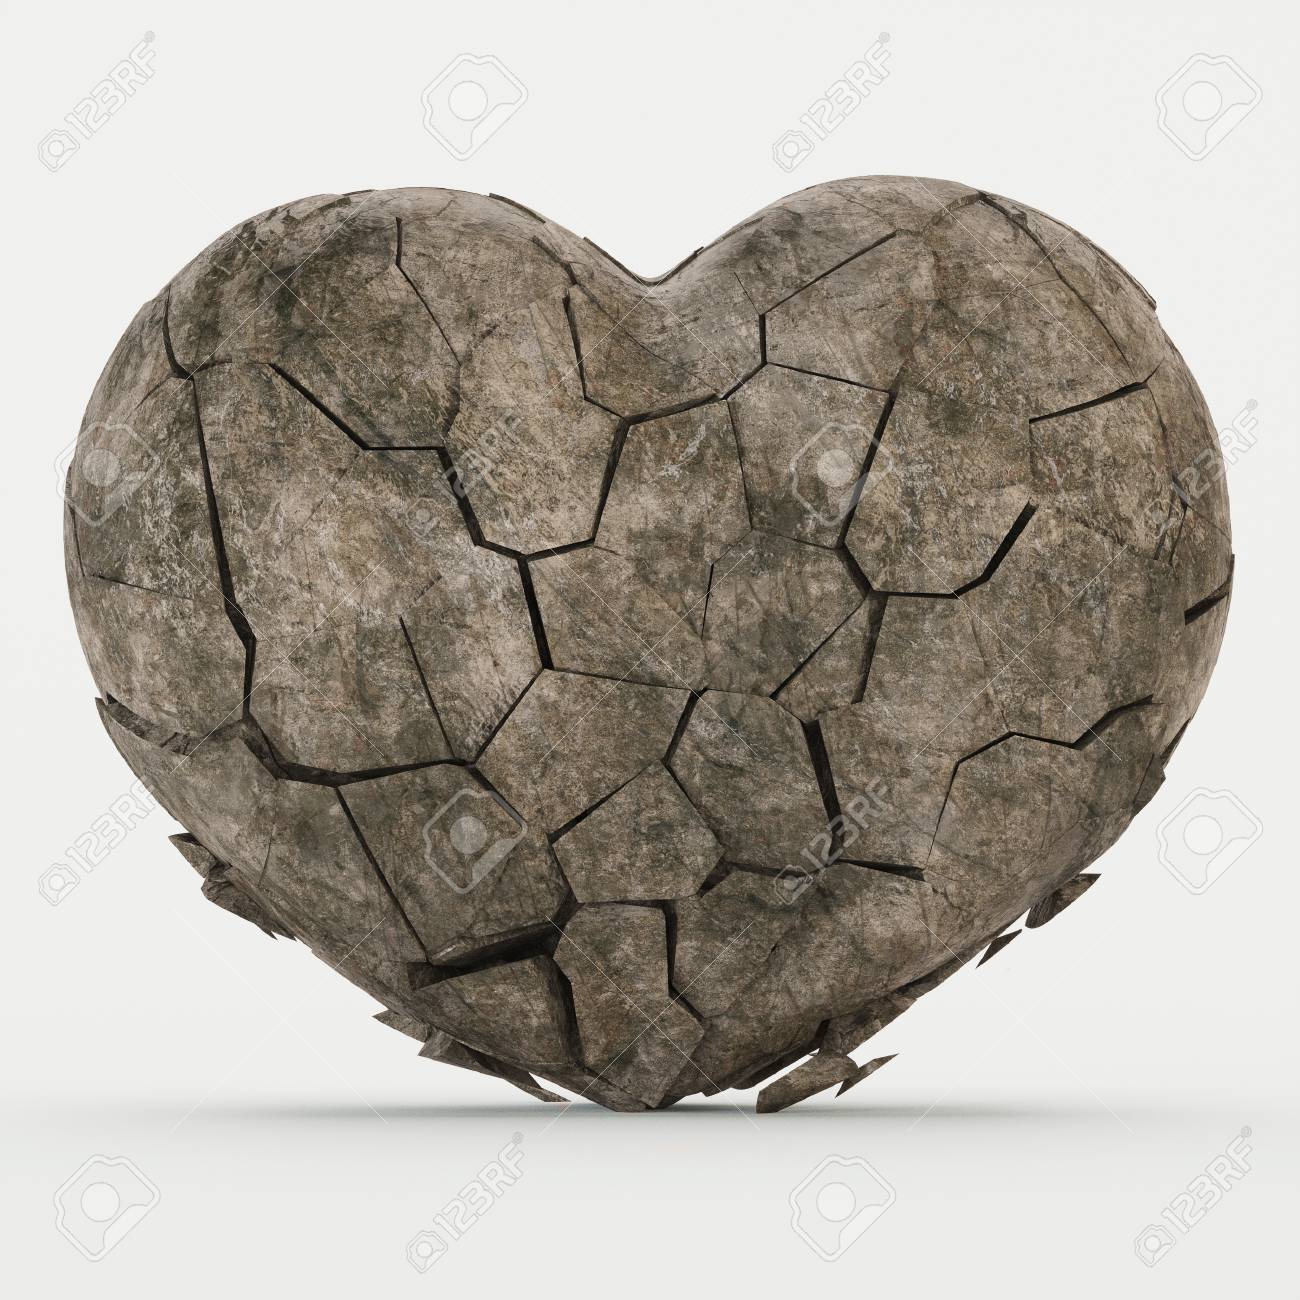 heart with calcification